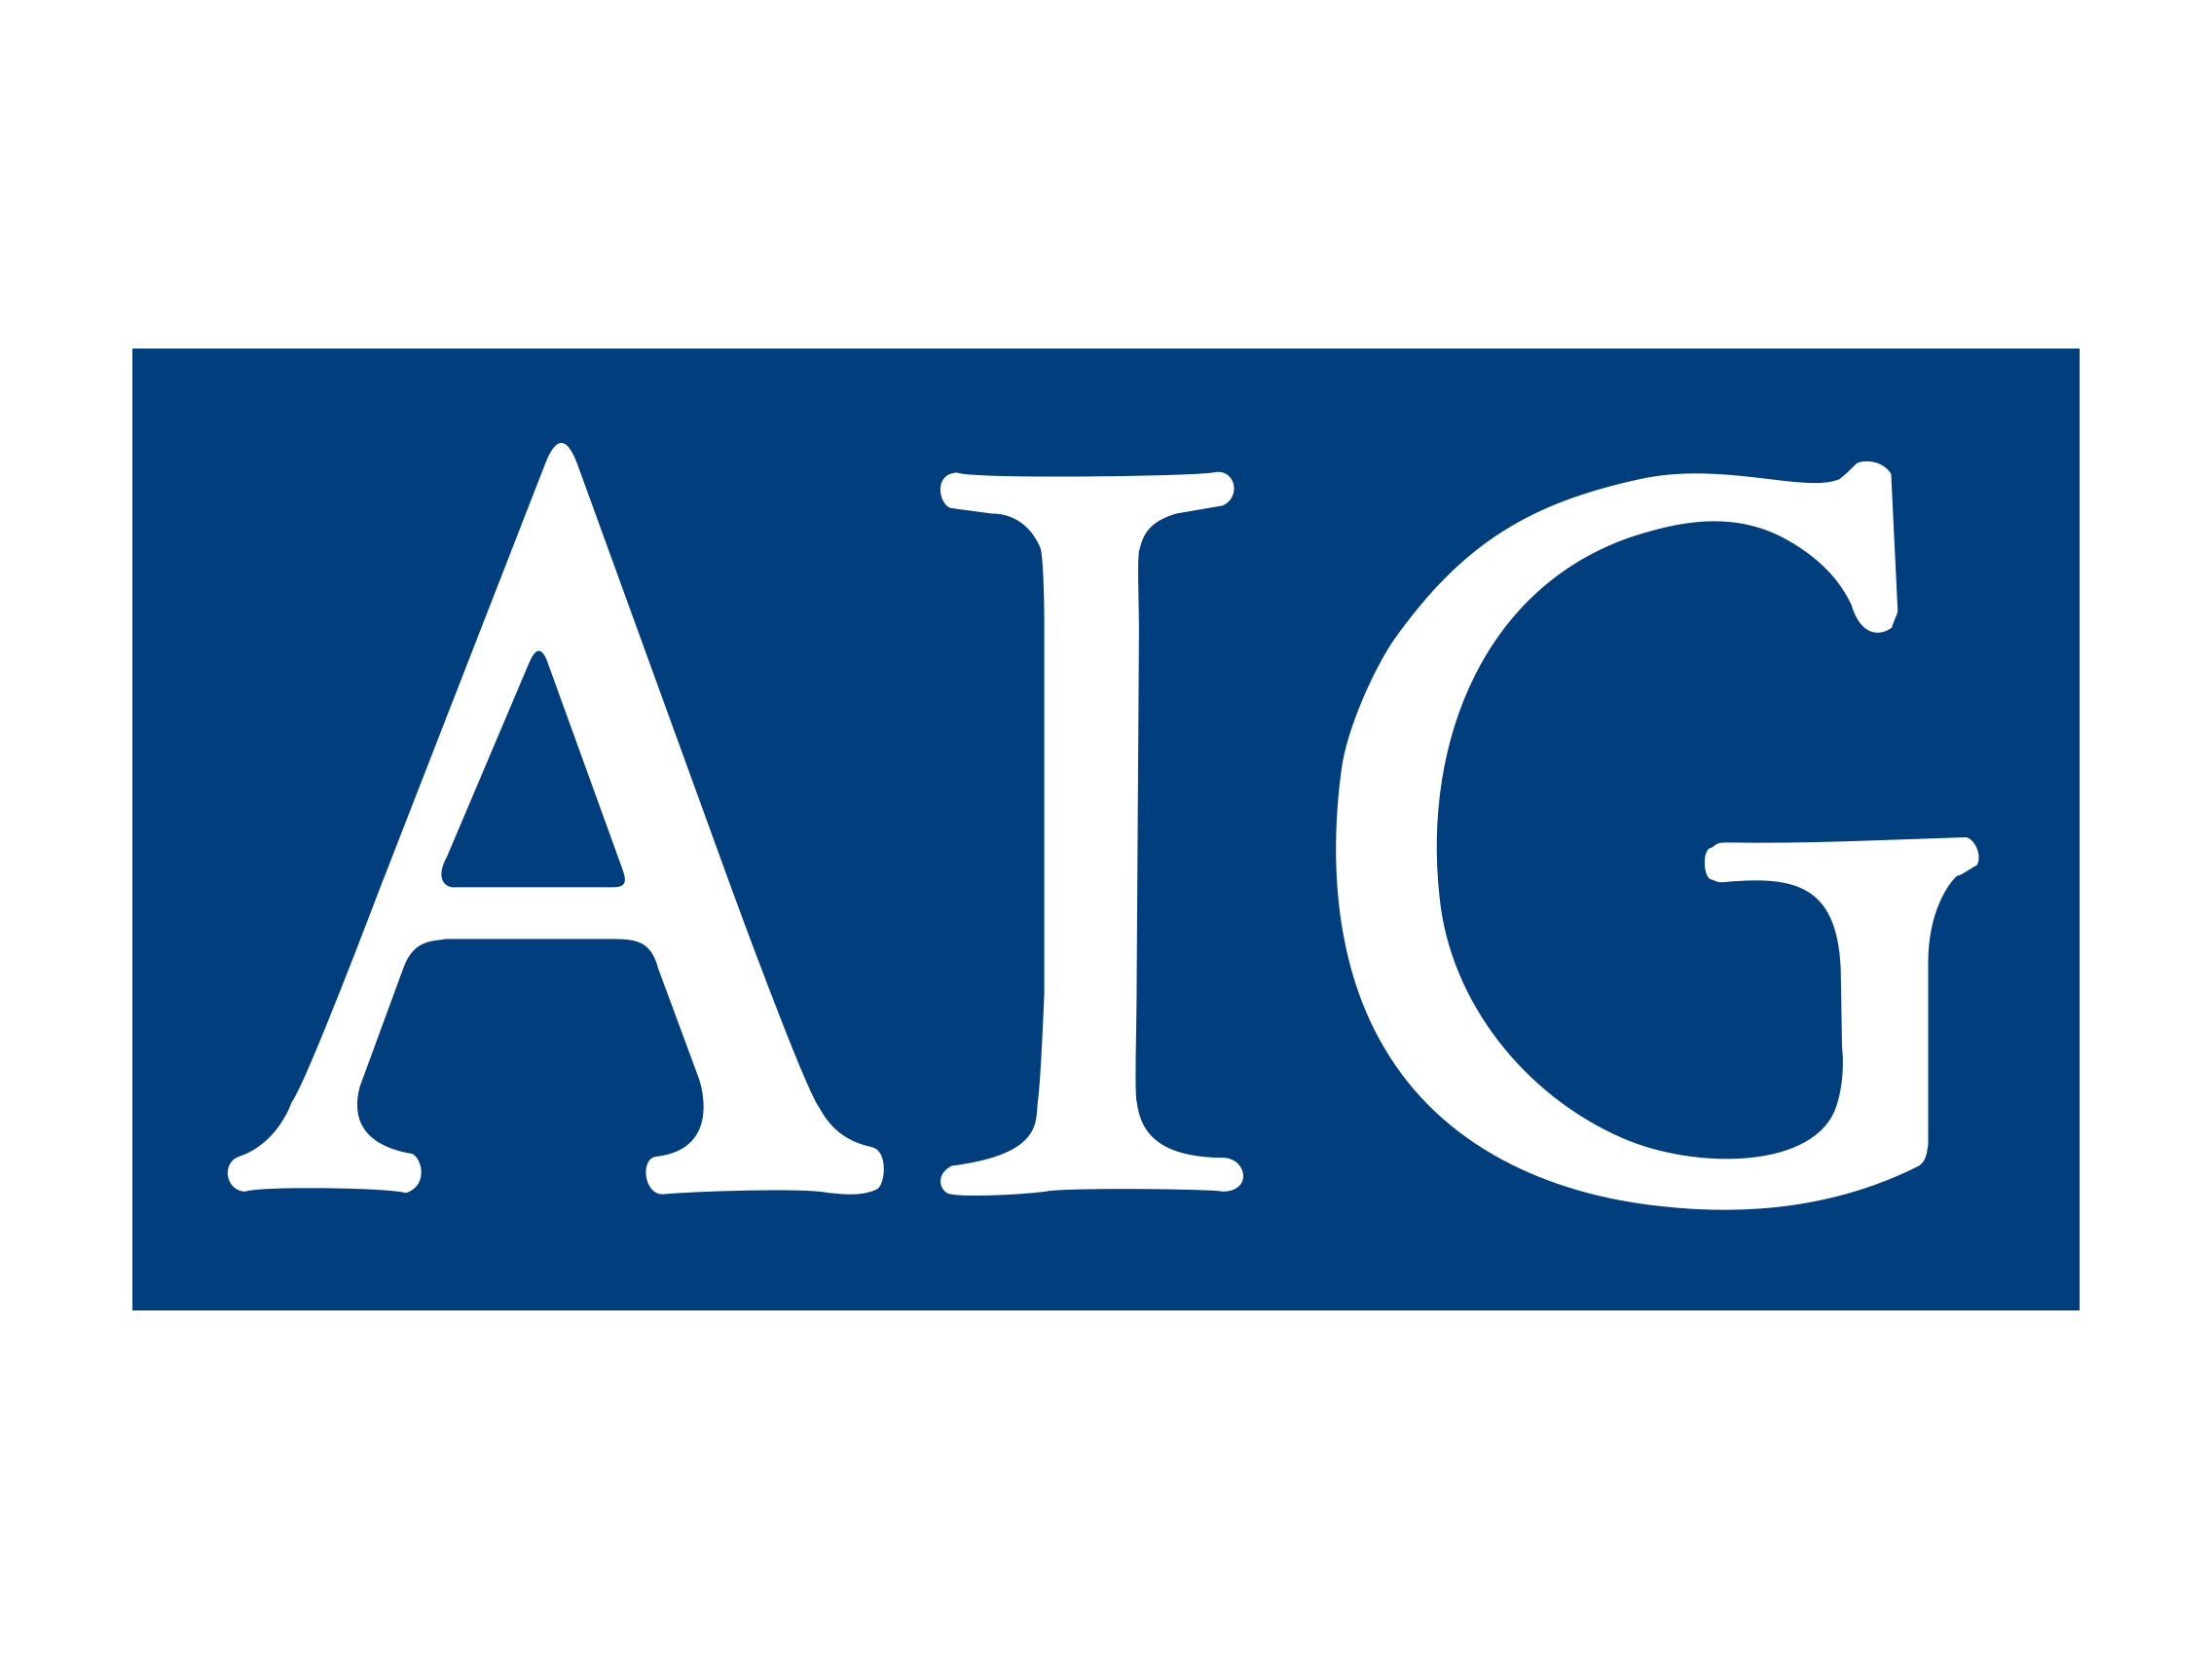 American international group or aig